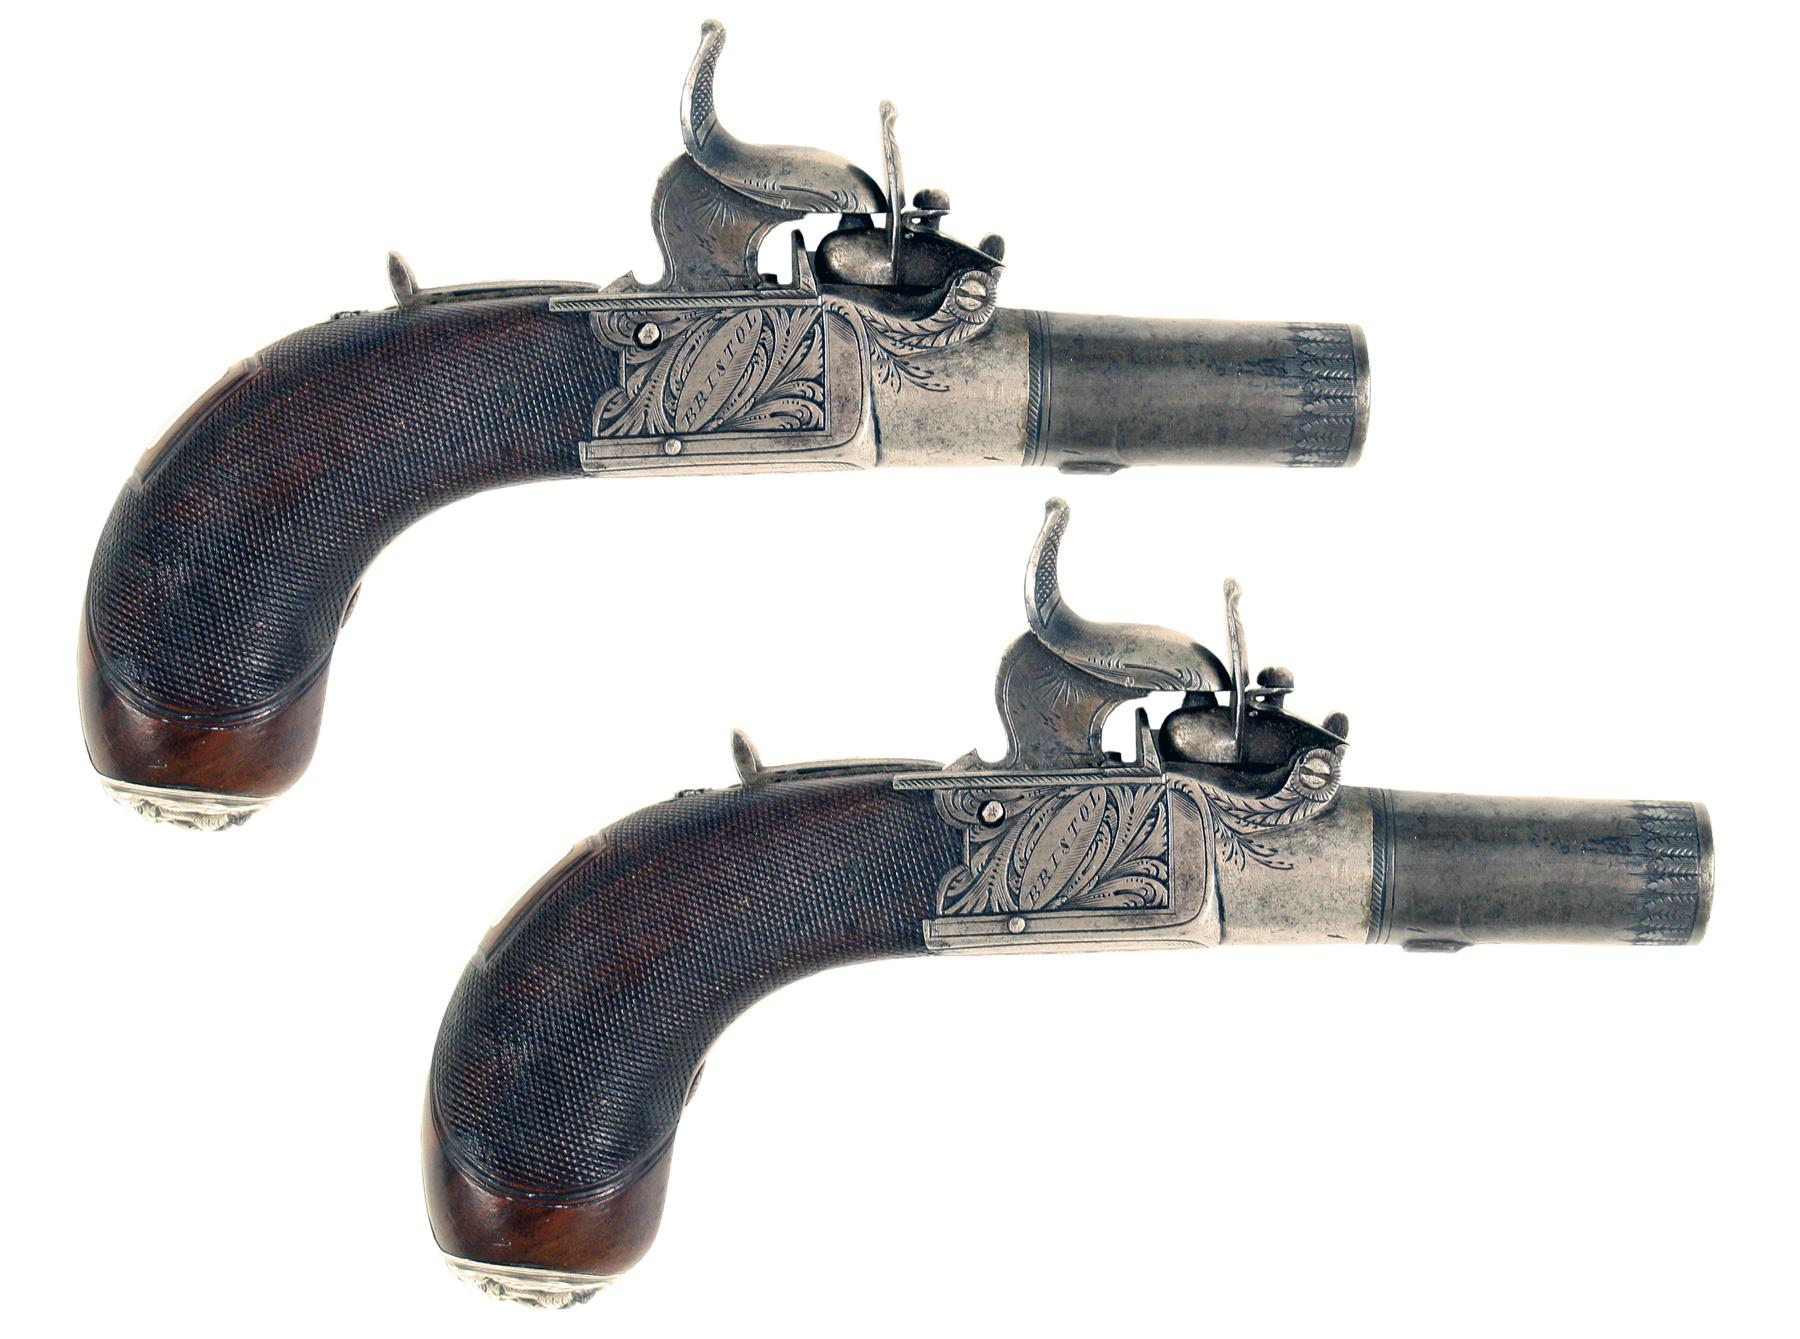 A Pair of Percussion Top-Hat Pistols